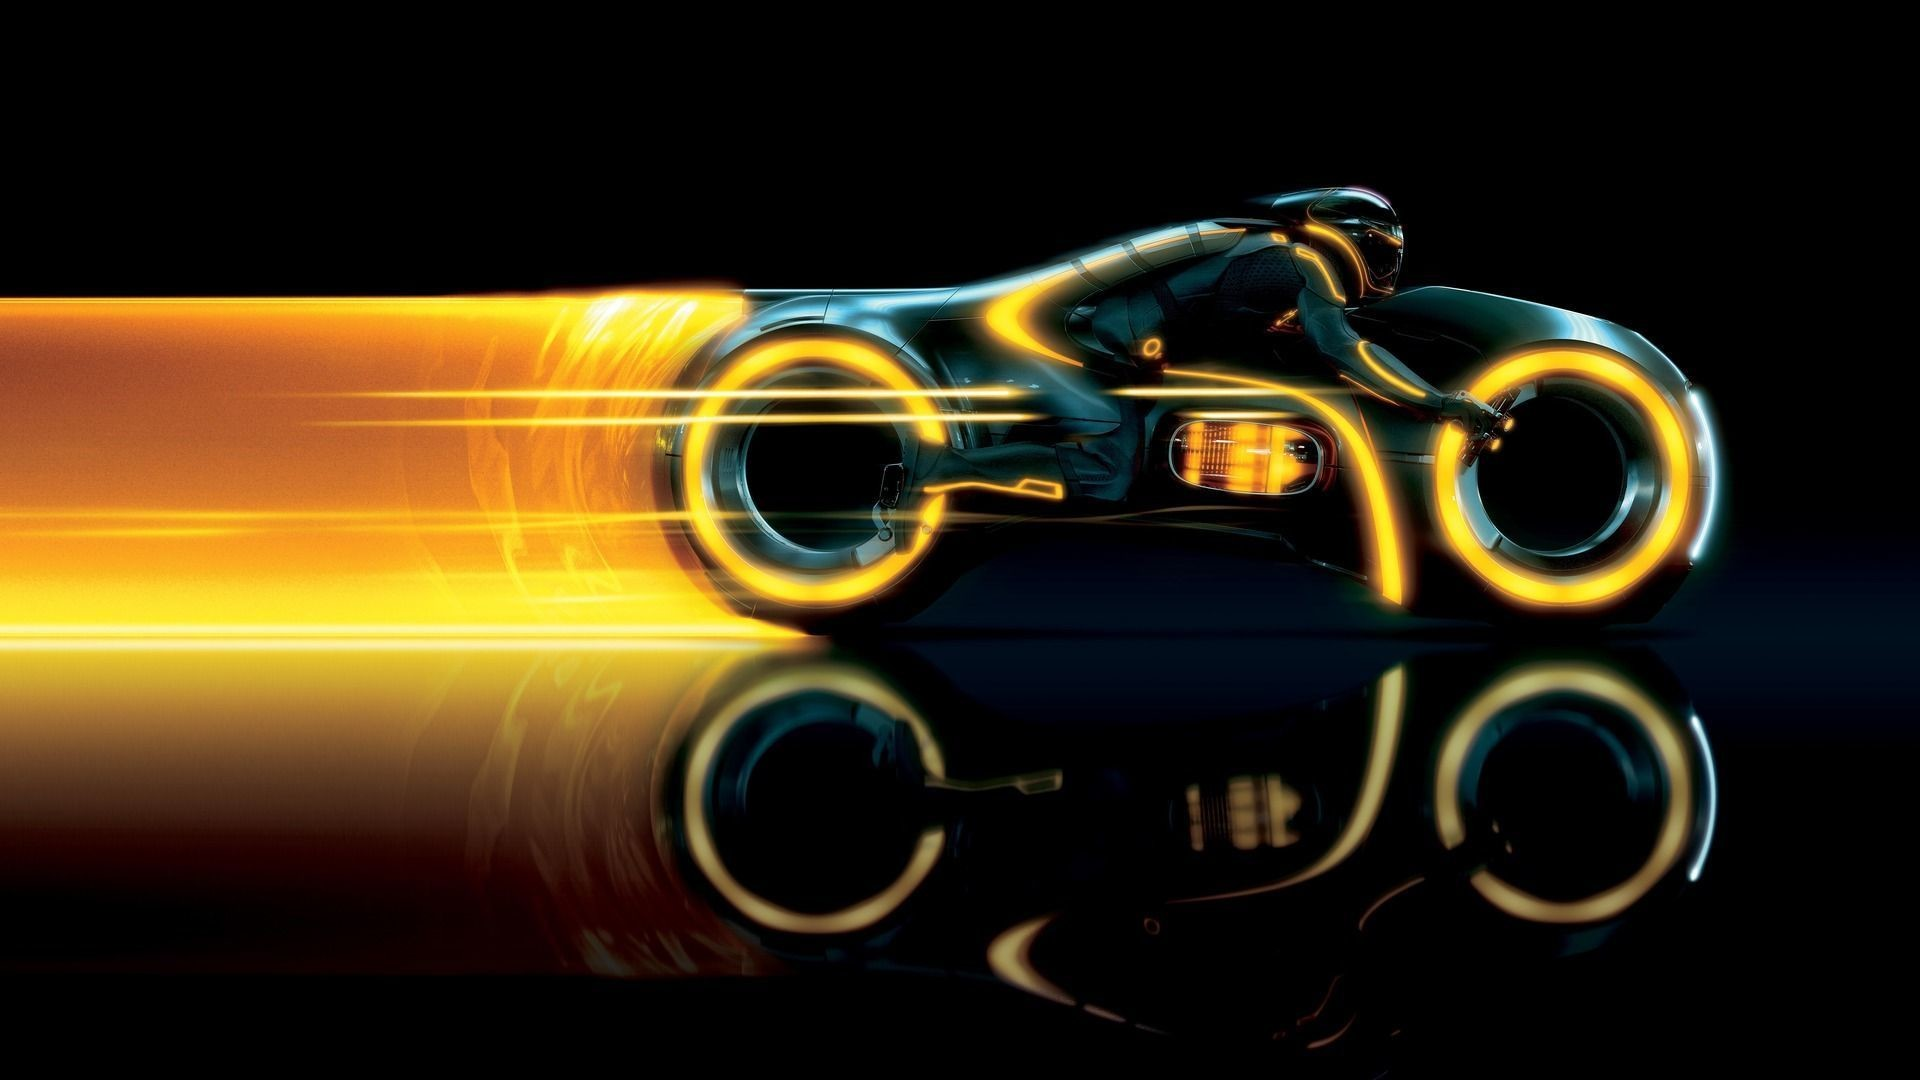 1920x1080 TRON bike from TRON:Legacy Wallpaper 27633